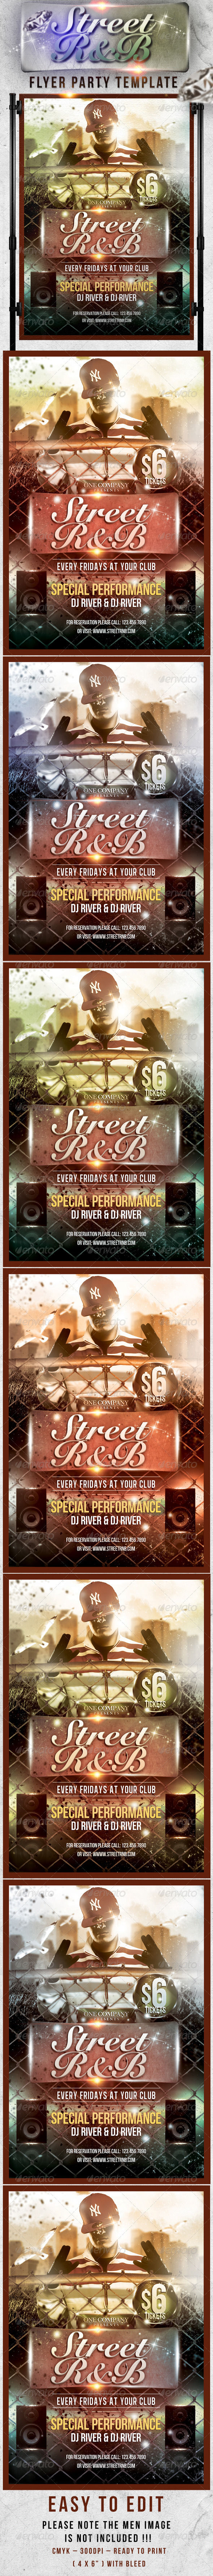 Street Rnb Flyer Template - Clubs & Parties Events